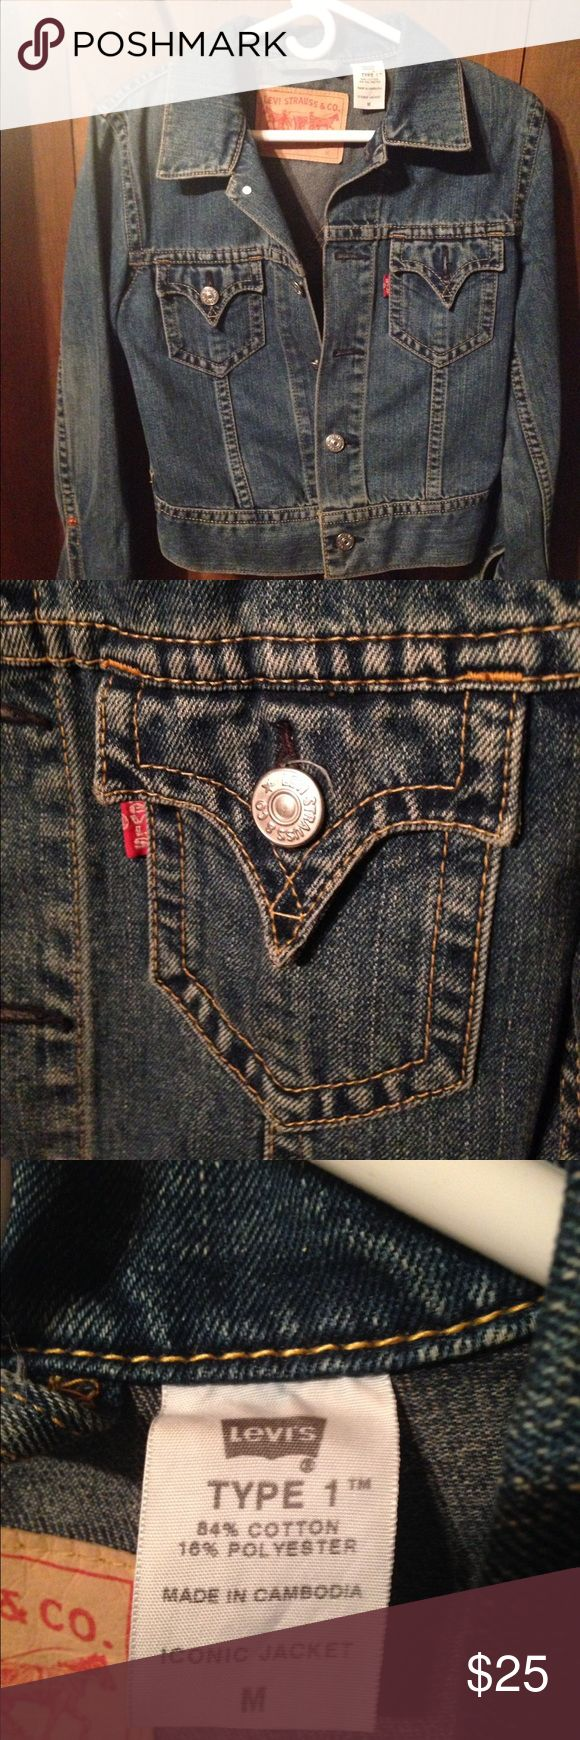 Levi's Jacket Women's Levi's Type 1 Iconic Jacket. This jacket is too cool with the cut, pointed pocket flaps and yoke, wide waist band and cuffs and oversized silver buttons. It's a sweetheart ❤️. And in like new condition... Levi's Jackets & Coats Jean Jackets